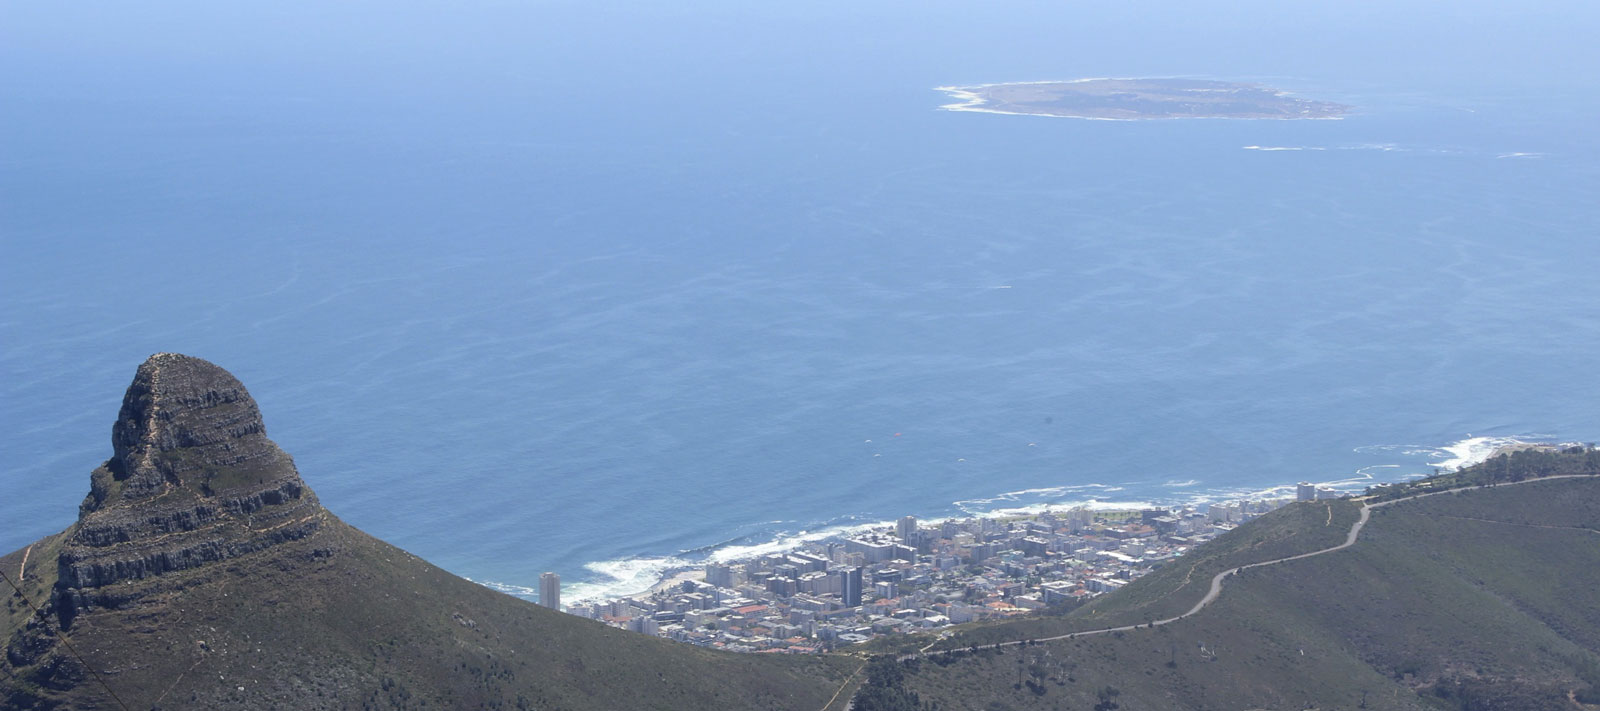 Lion's Head and Robben Island